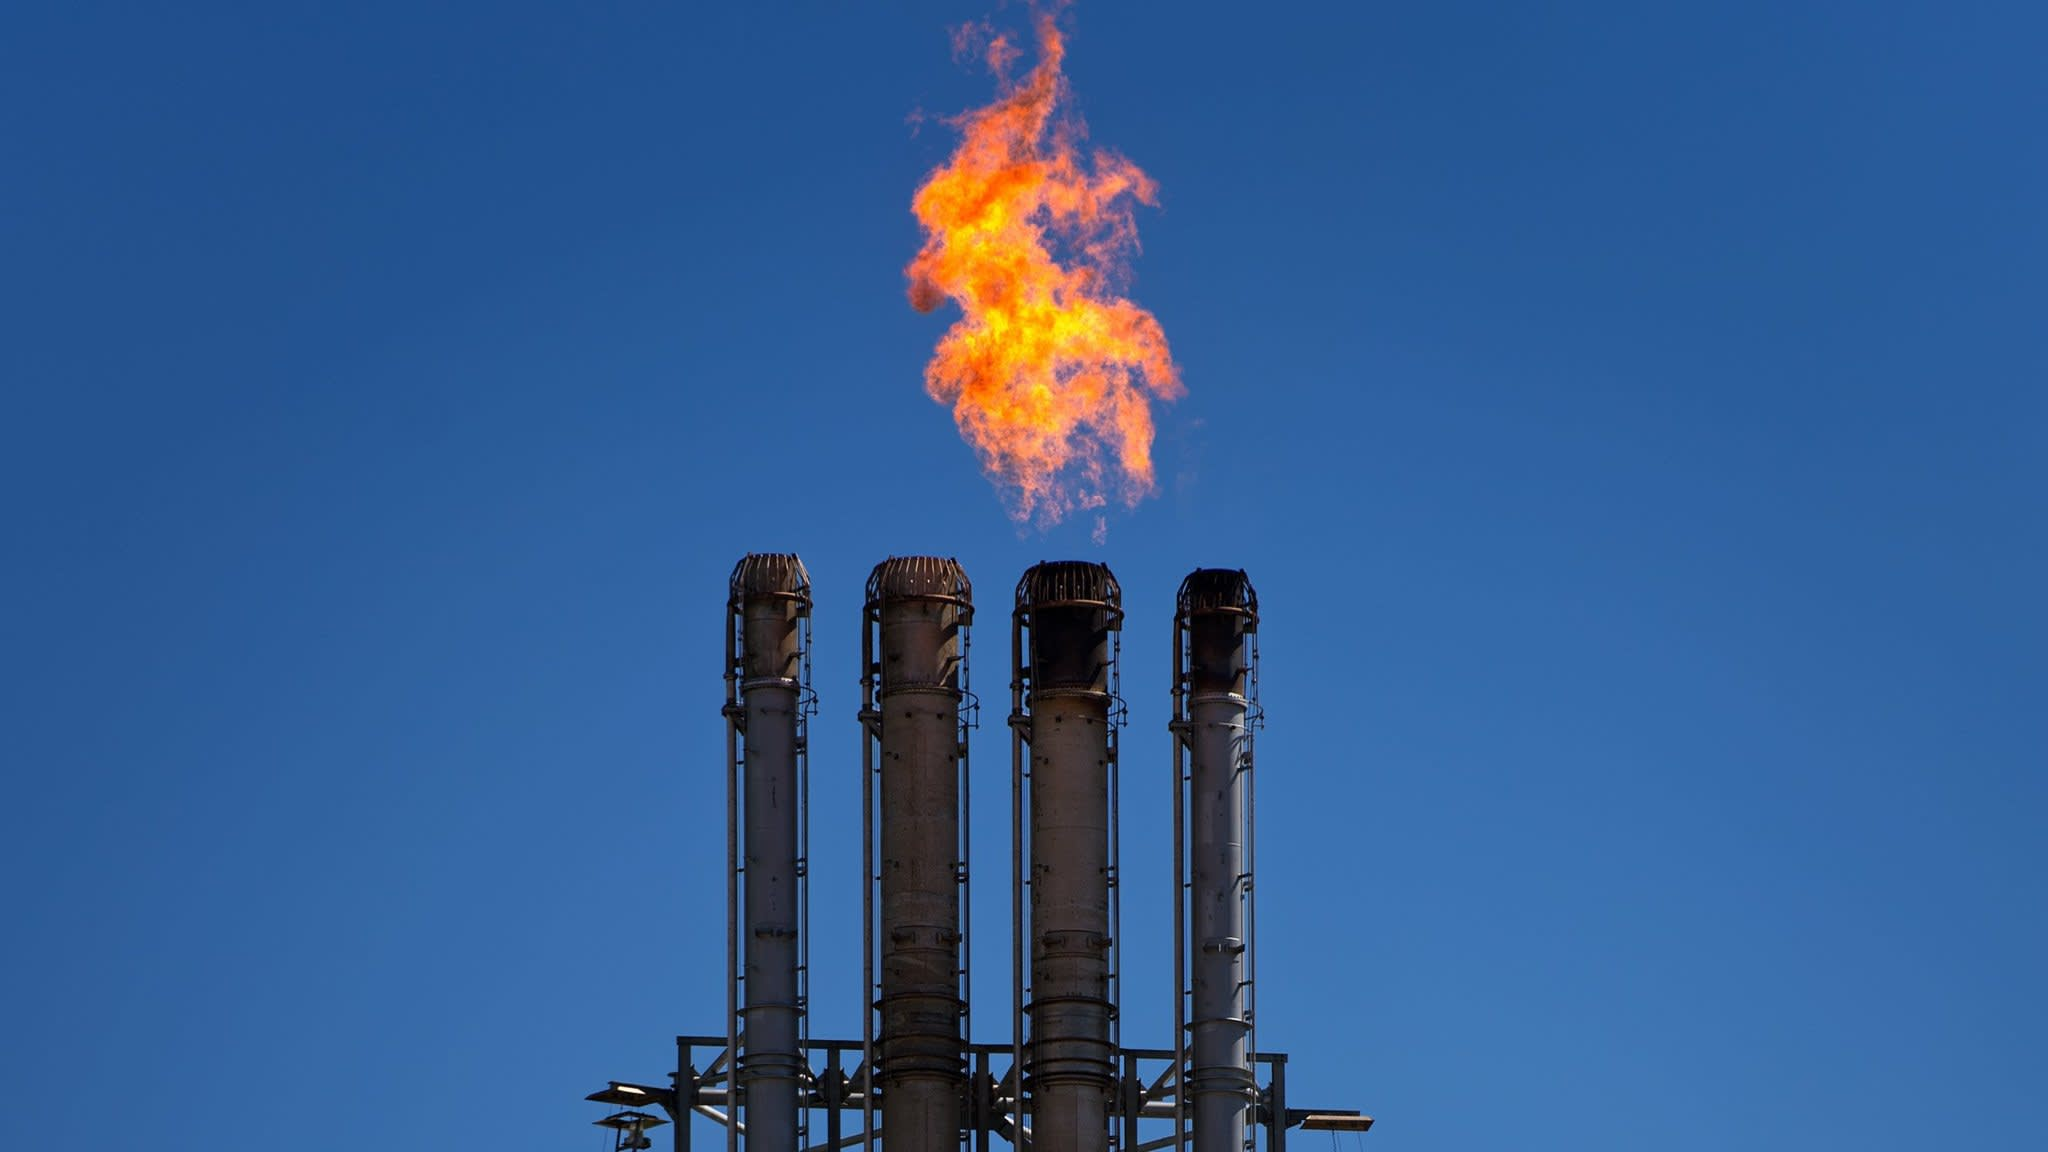 Wild gas price swings spur CME 'emergency action'